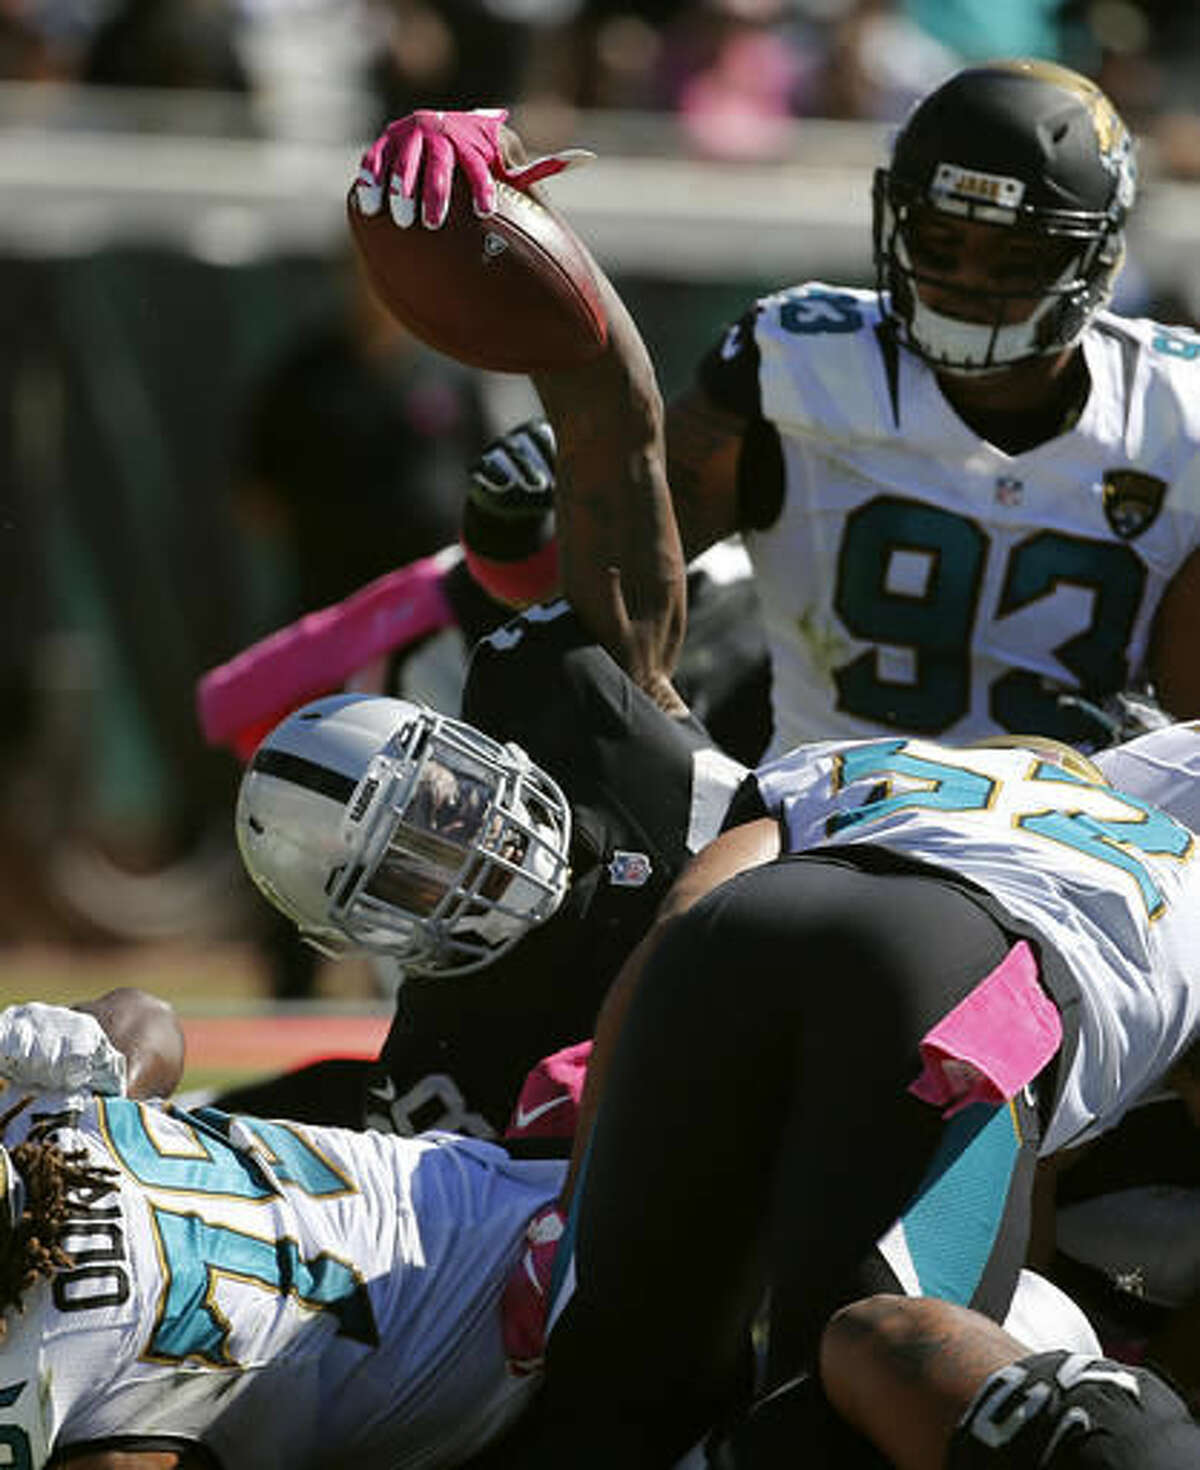 Oakland Raiders running back Latavius Murray (28) lifts the ball over the line for a two-yard touchdown run against the Jacksonville Jaguars during the second quarter of an NFL football game Sunday, Oct. 23, 2016, in Jacksonville, Fla. (AP Photo/Stephen B. Morton)